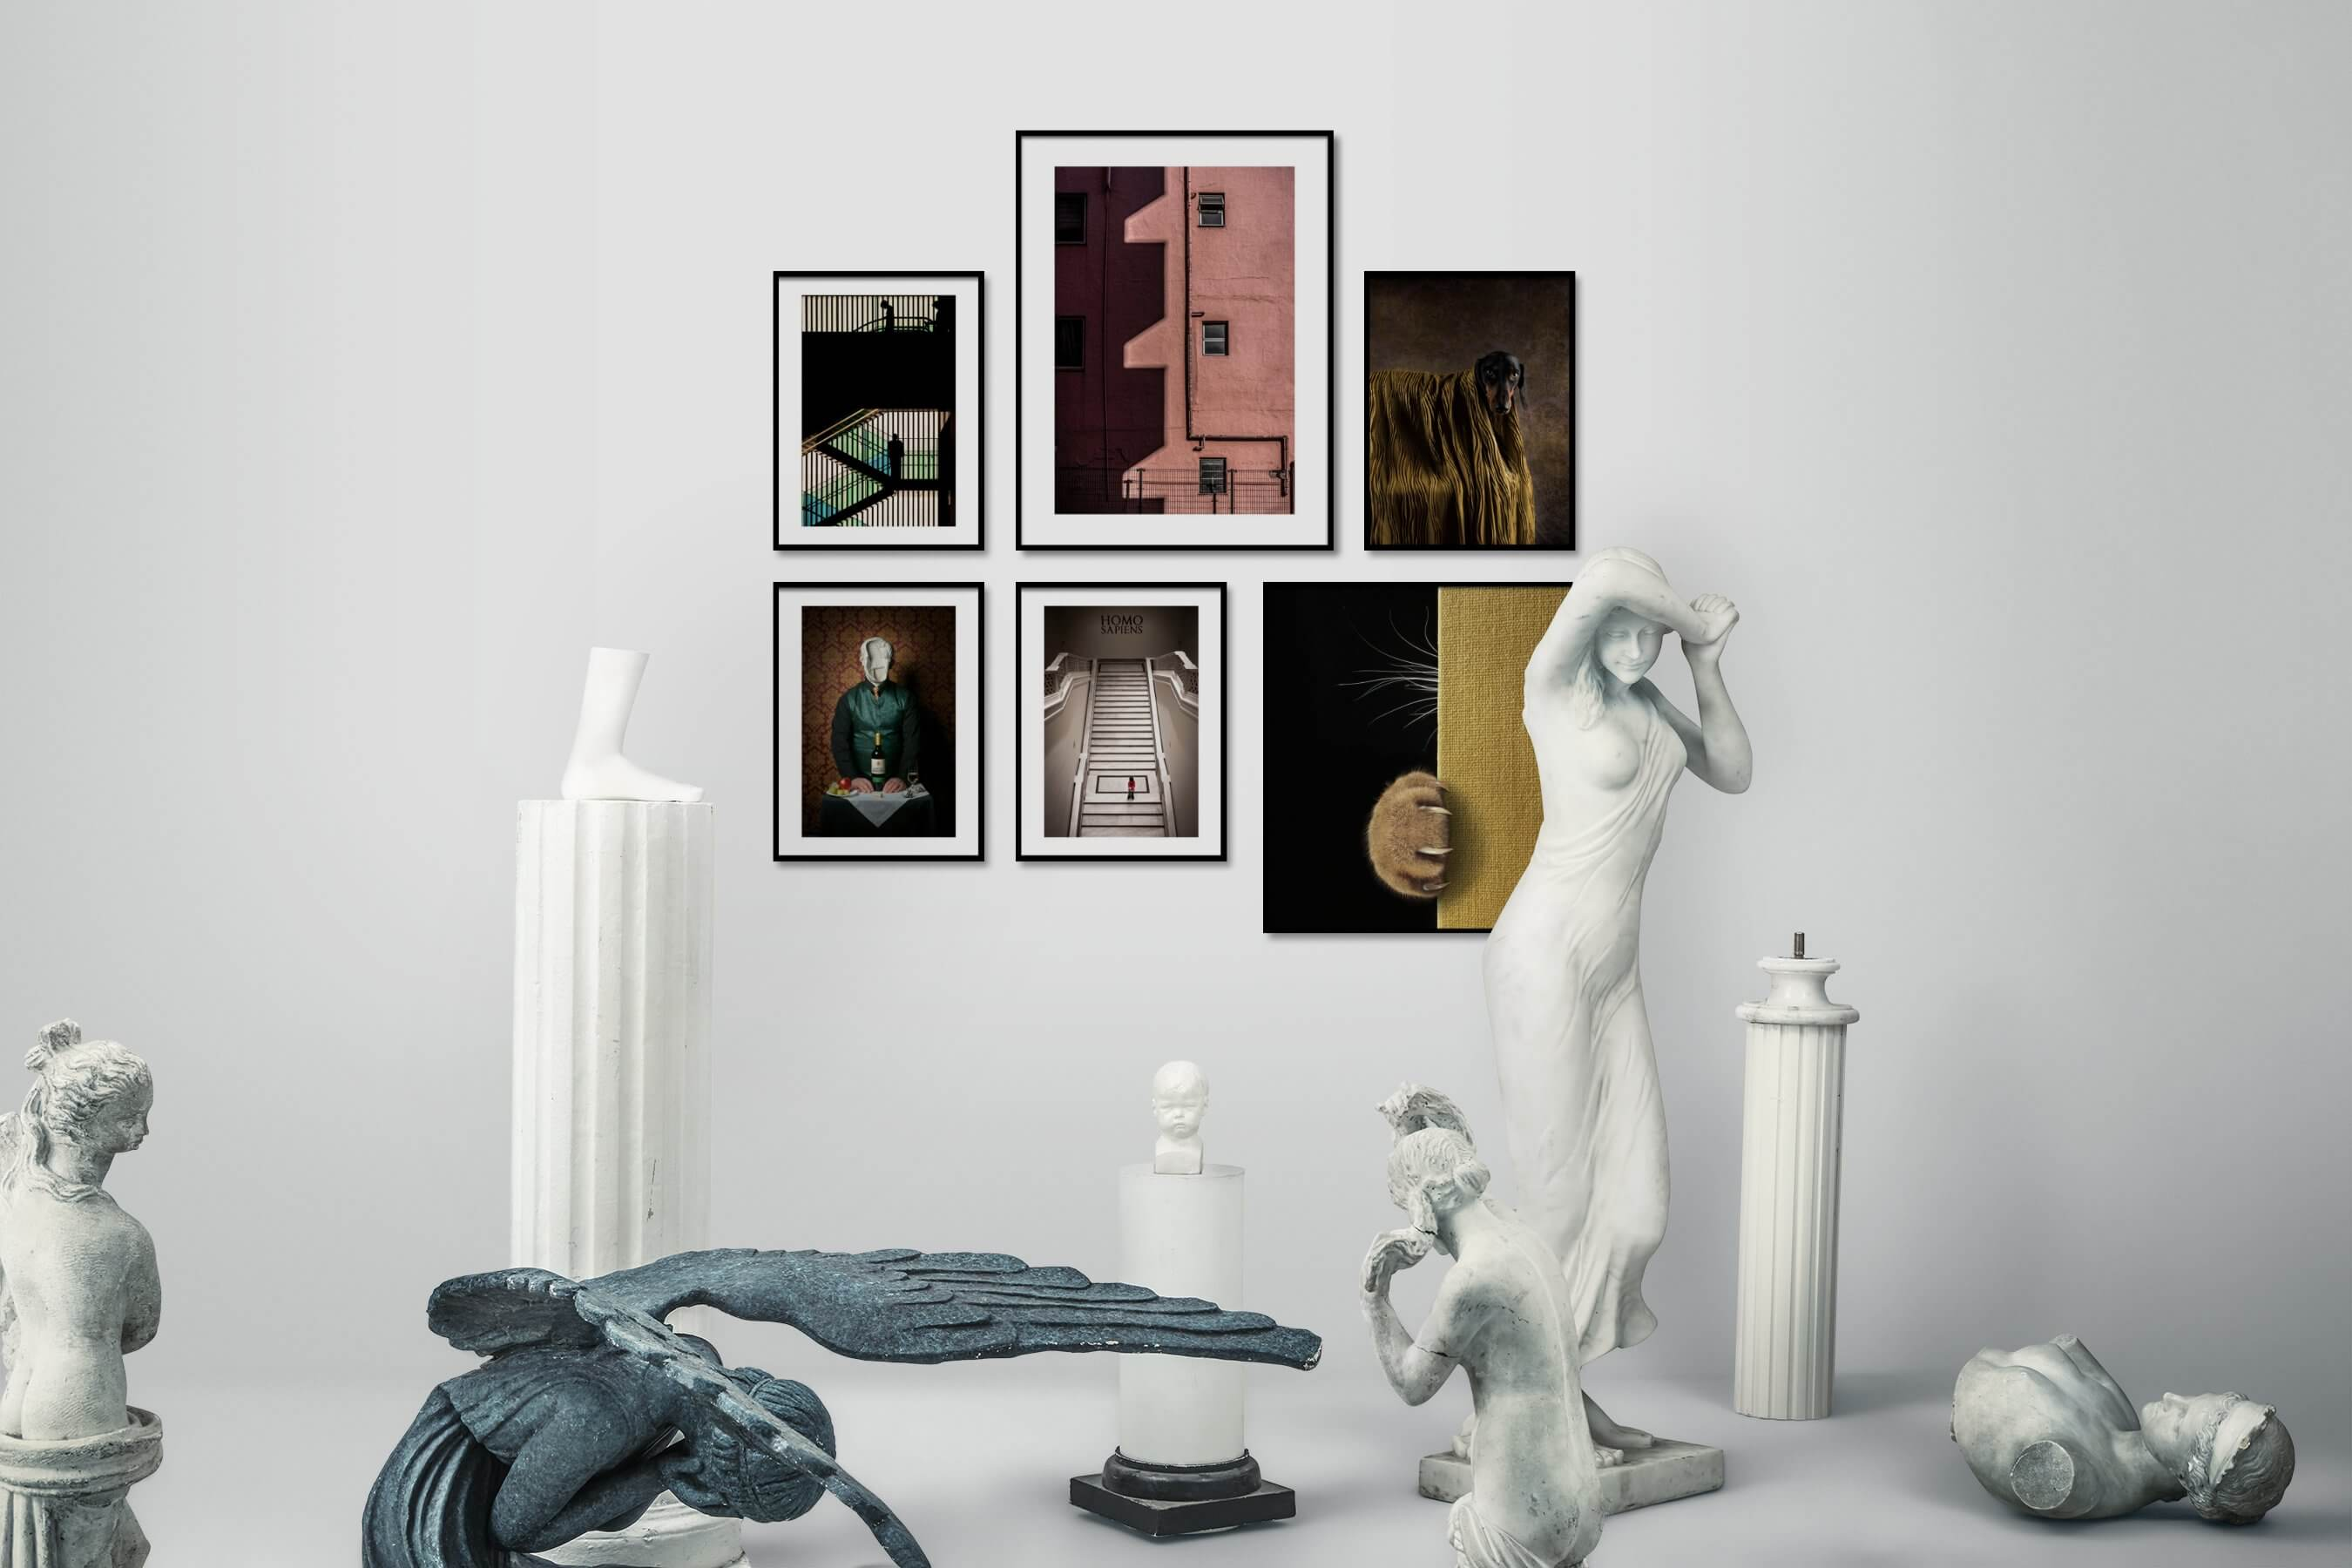 Gallery wall idea with six framed pictures arranged on a wall depicting For the Maximalist, City Life, For the Moderate, Artsy, and Animals